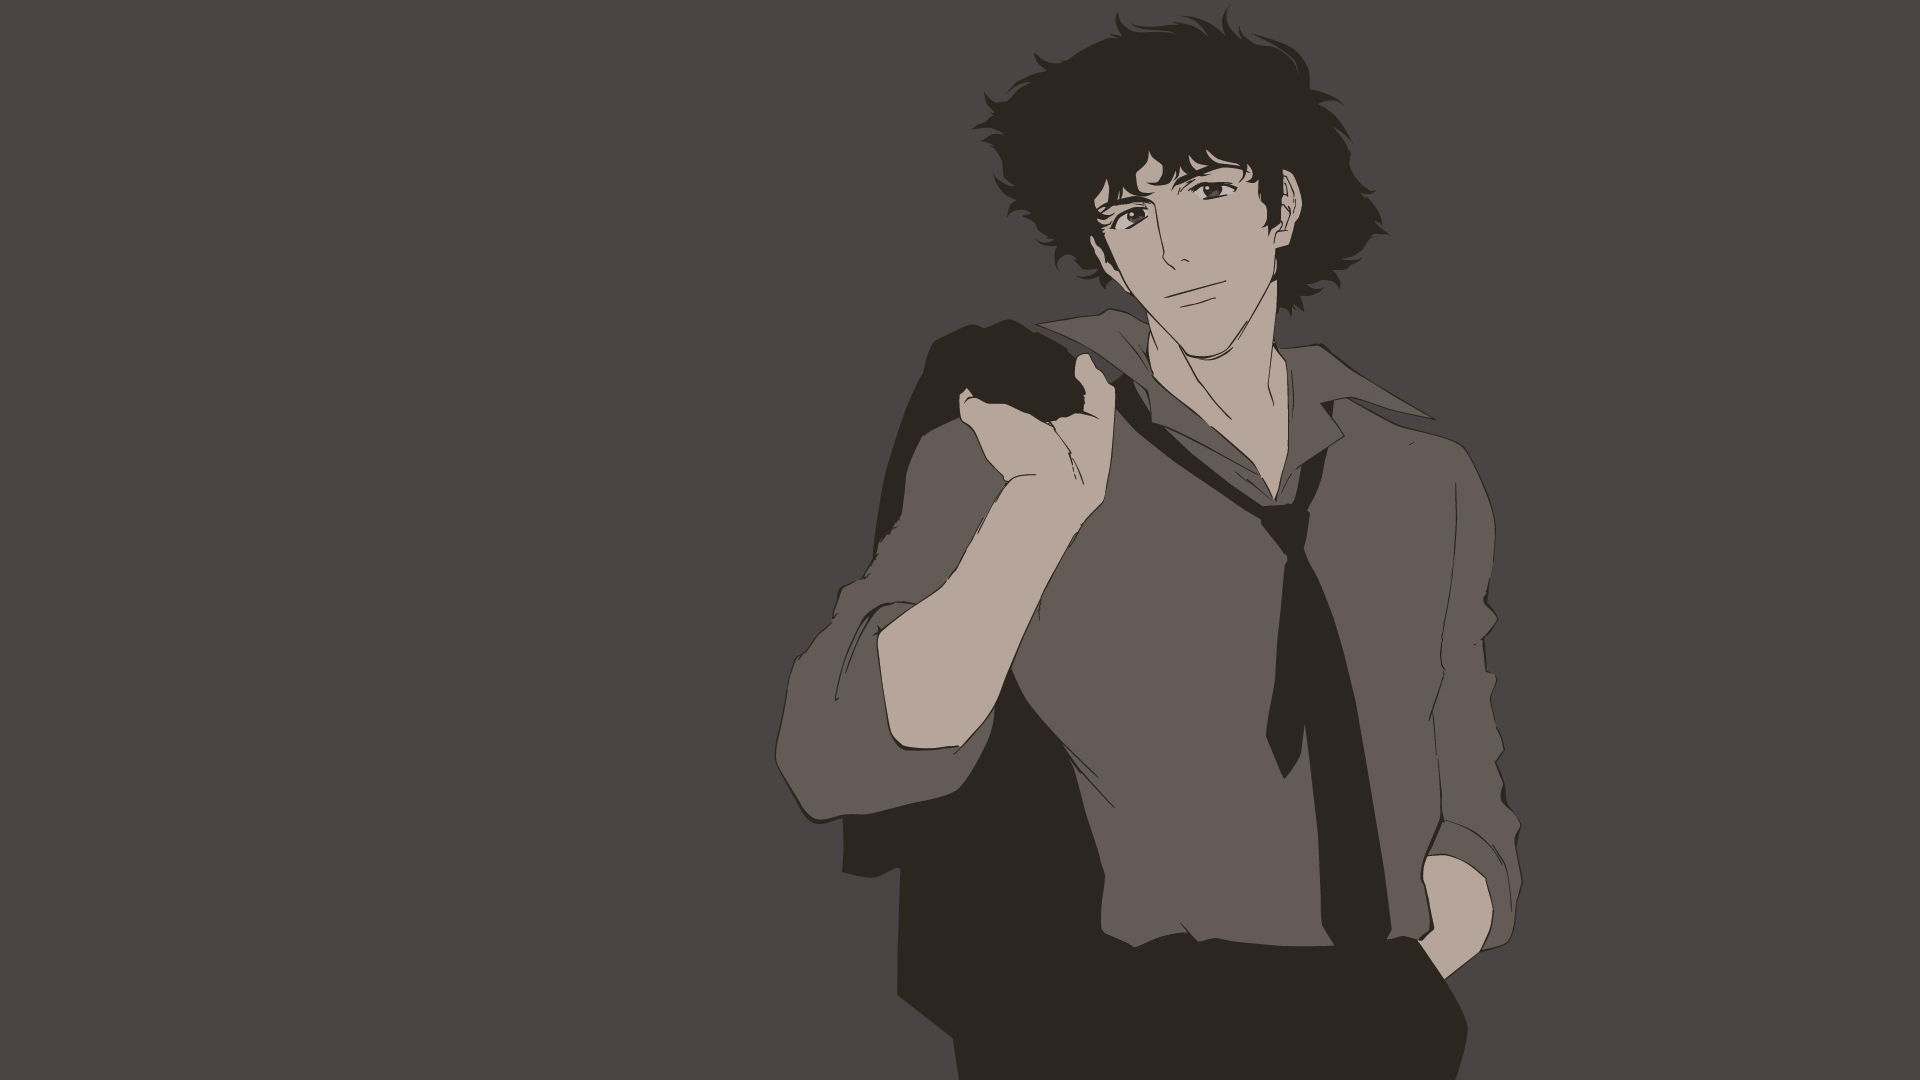 cowboy bebop spike spiegel HD Wallpaper